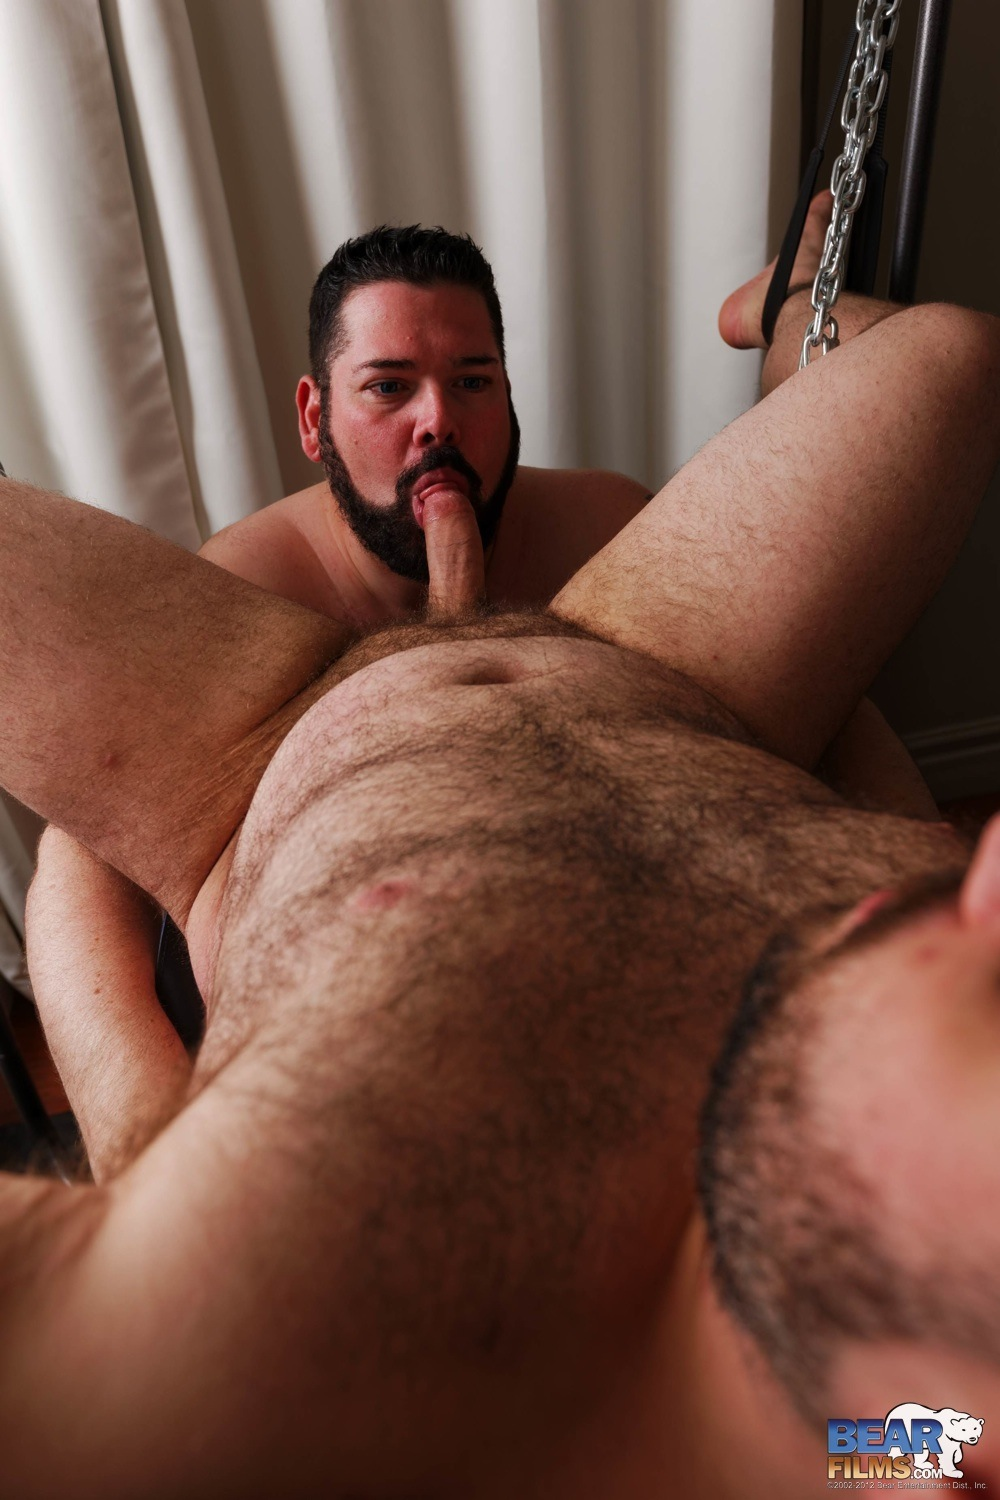 Bear-Films-Mathias-Cubst-and-Ourson-Swells-Chubby-Bear-Gets-Fucked-in-a-Sling-Amateur-Gay-Porn-10 Amateur XL Chubby Bear Gets Fucked And Rimmed In A Sling